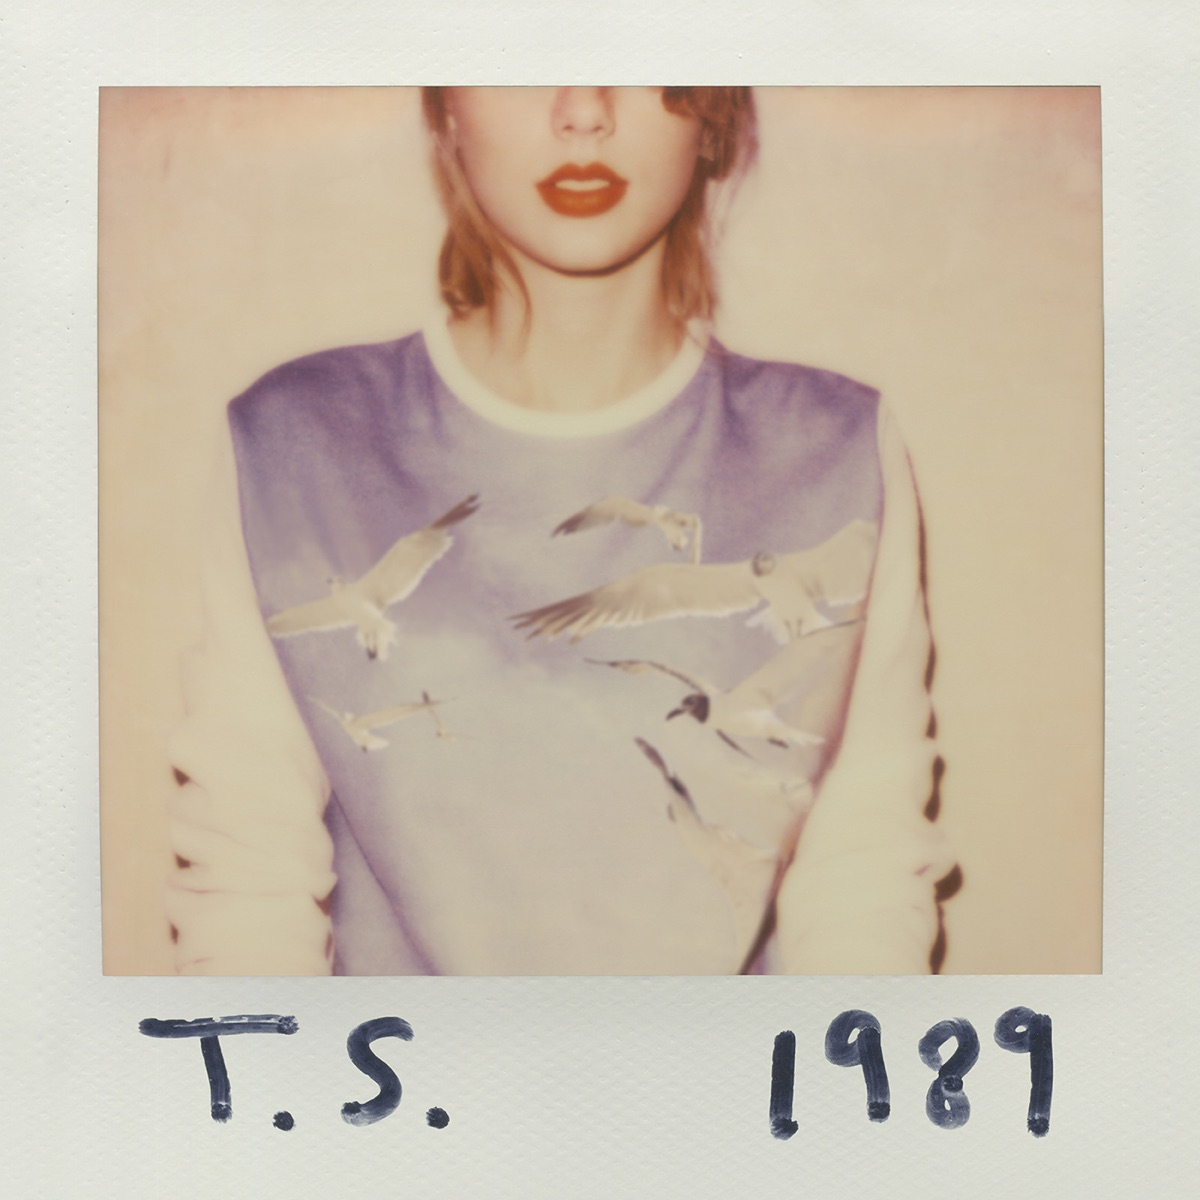 1989 Taylor Swift CD cover